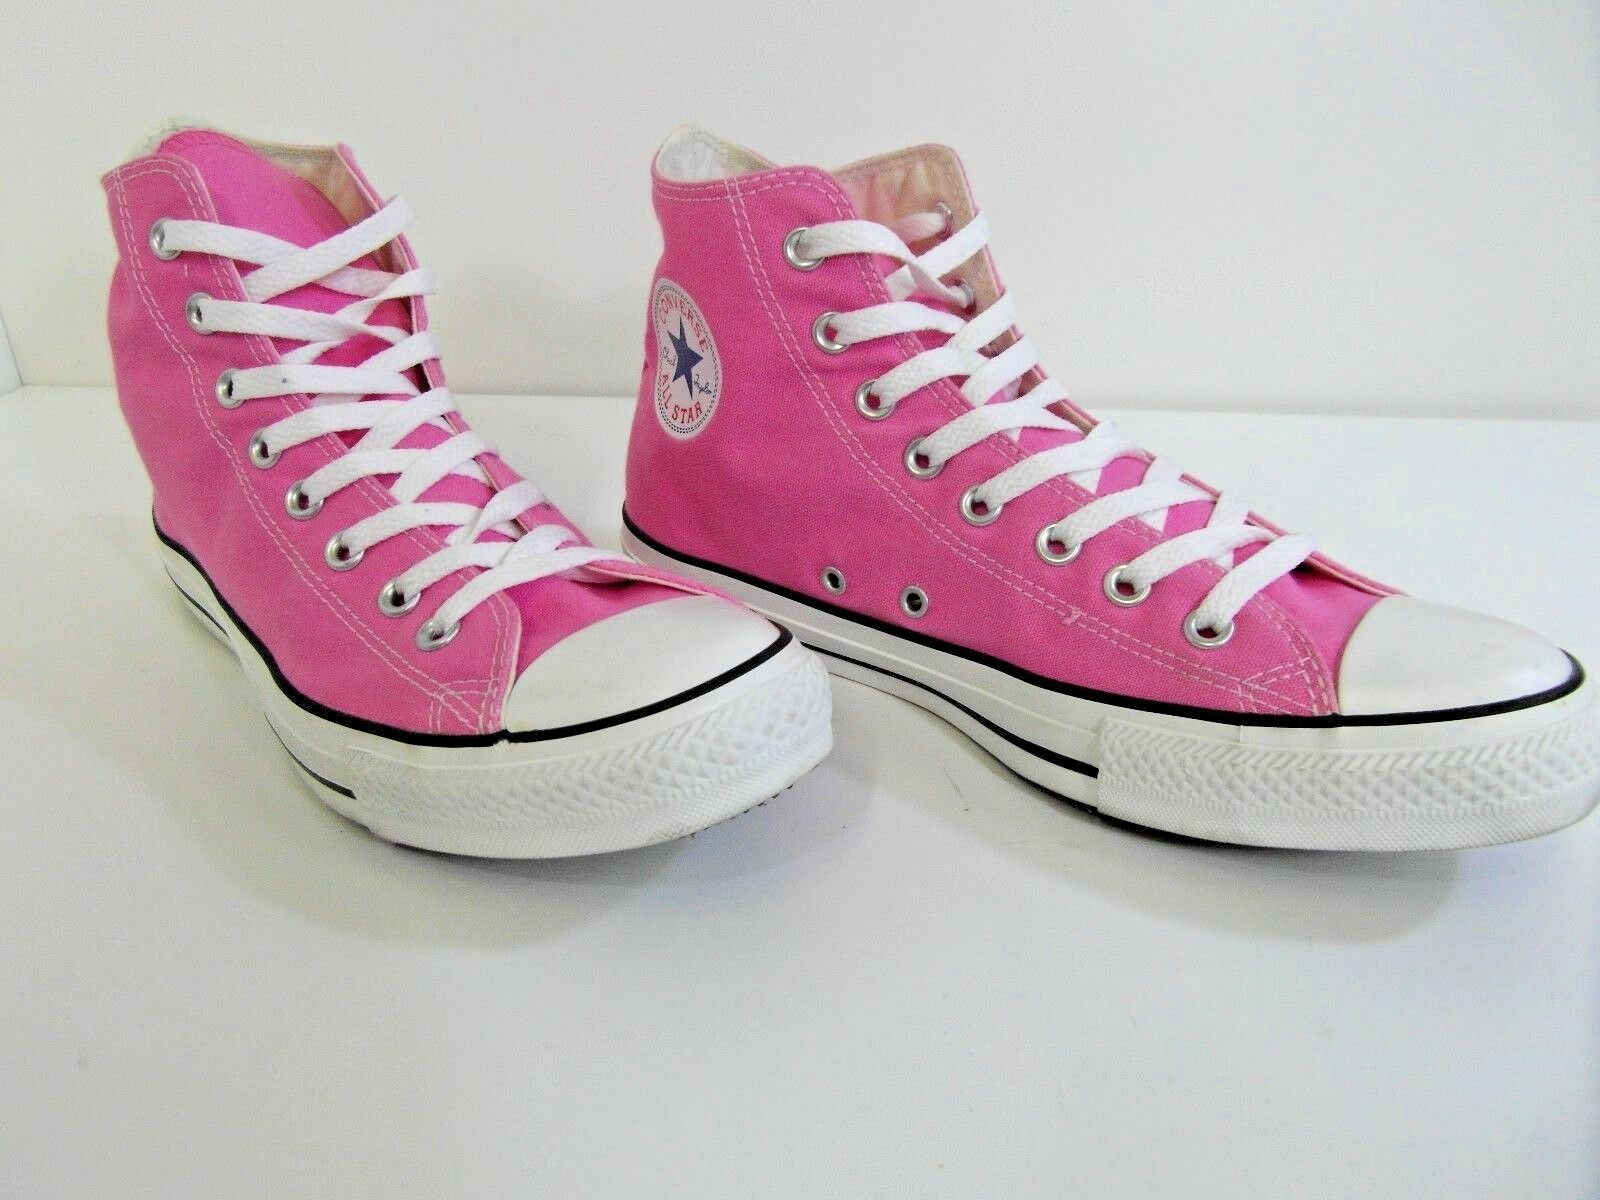 CONVERSE SNEAKERS ALL STAR CHUCK TAYLOR PINK HIGH TOP SNEAKERS CONVERSE UNISEX PUMPS TRAINERS UK9 78477f